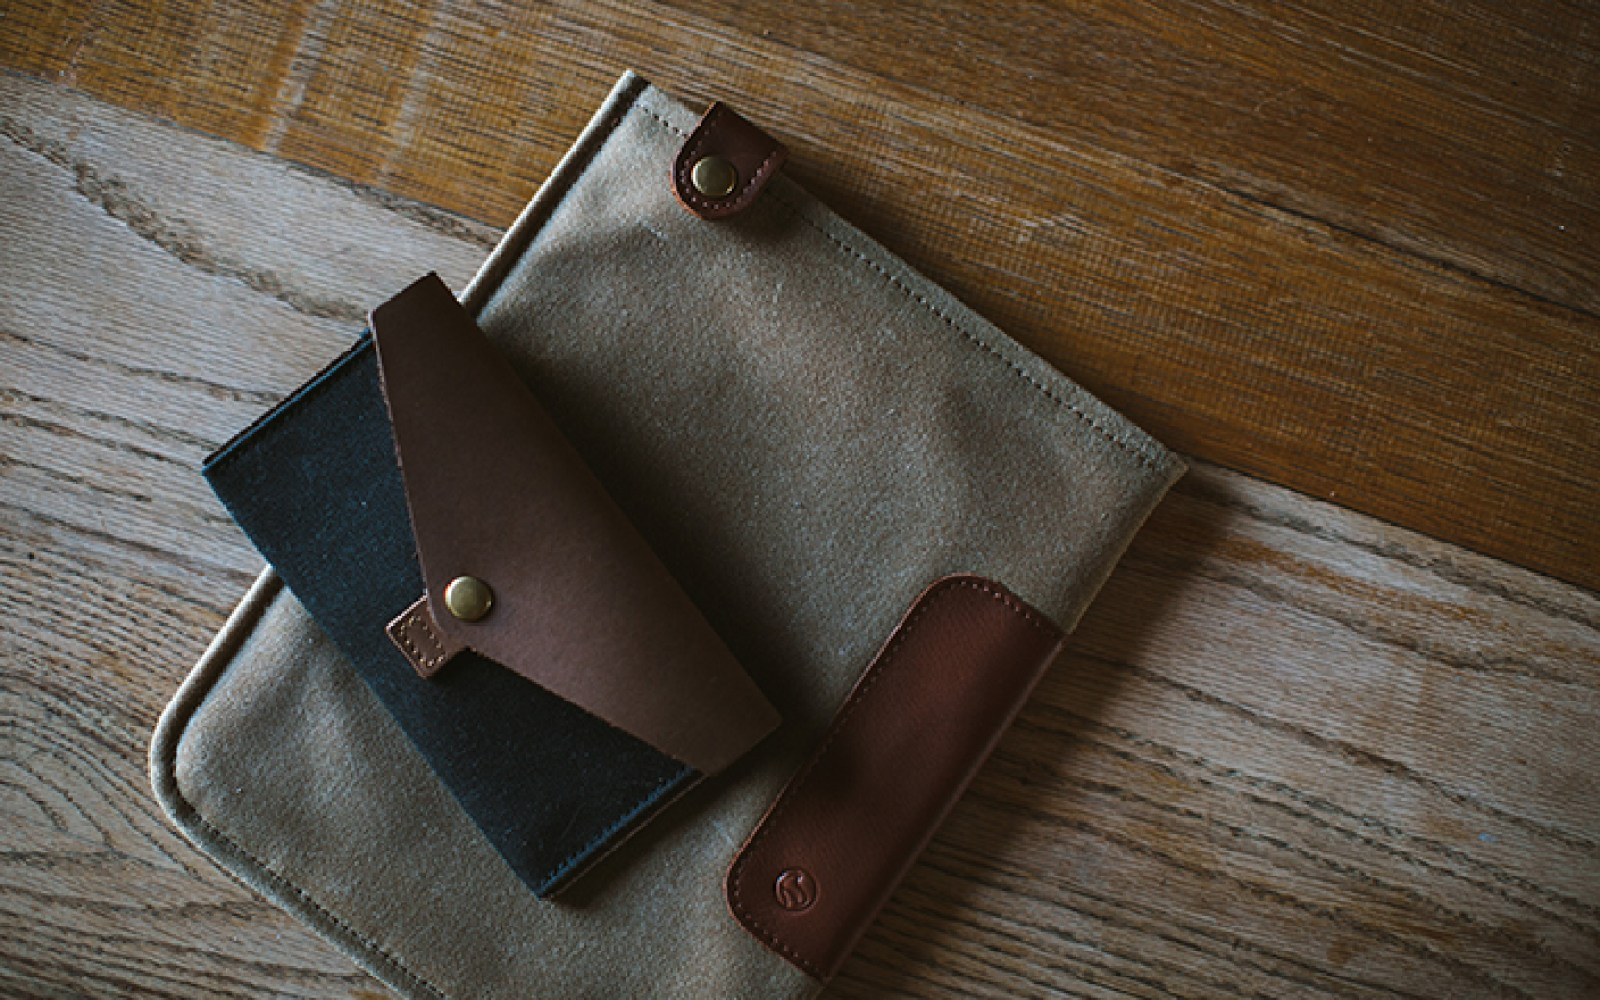 Small States: DODOcase uses old world craftsmanship to protect your modern devices, giveaways & 20% promo code